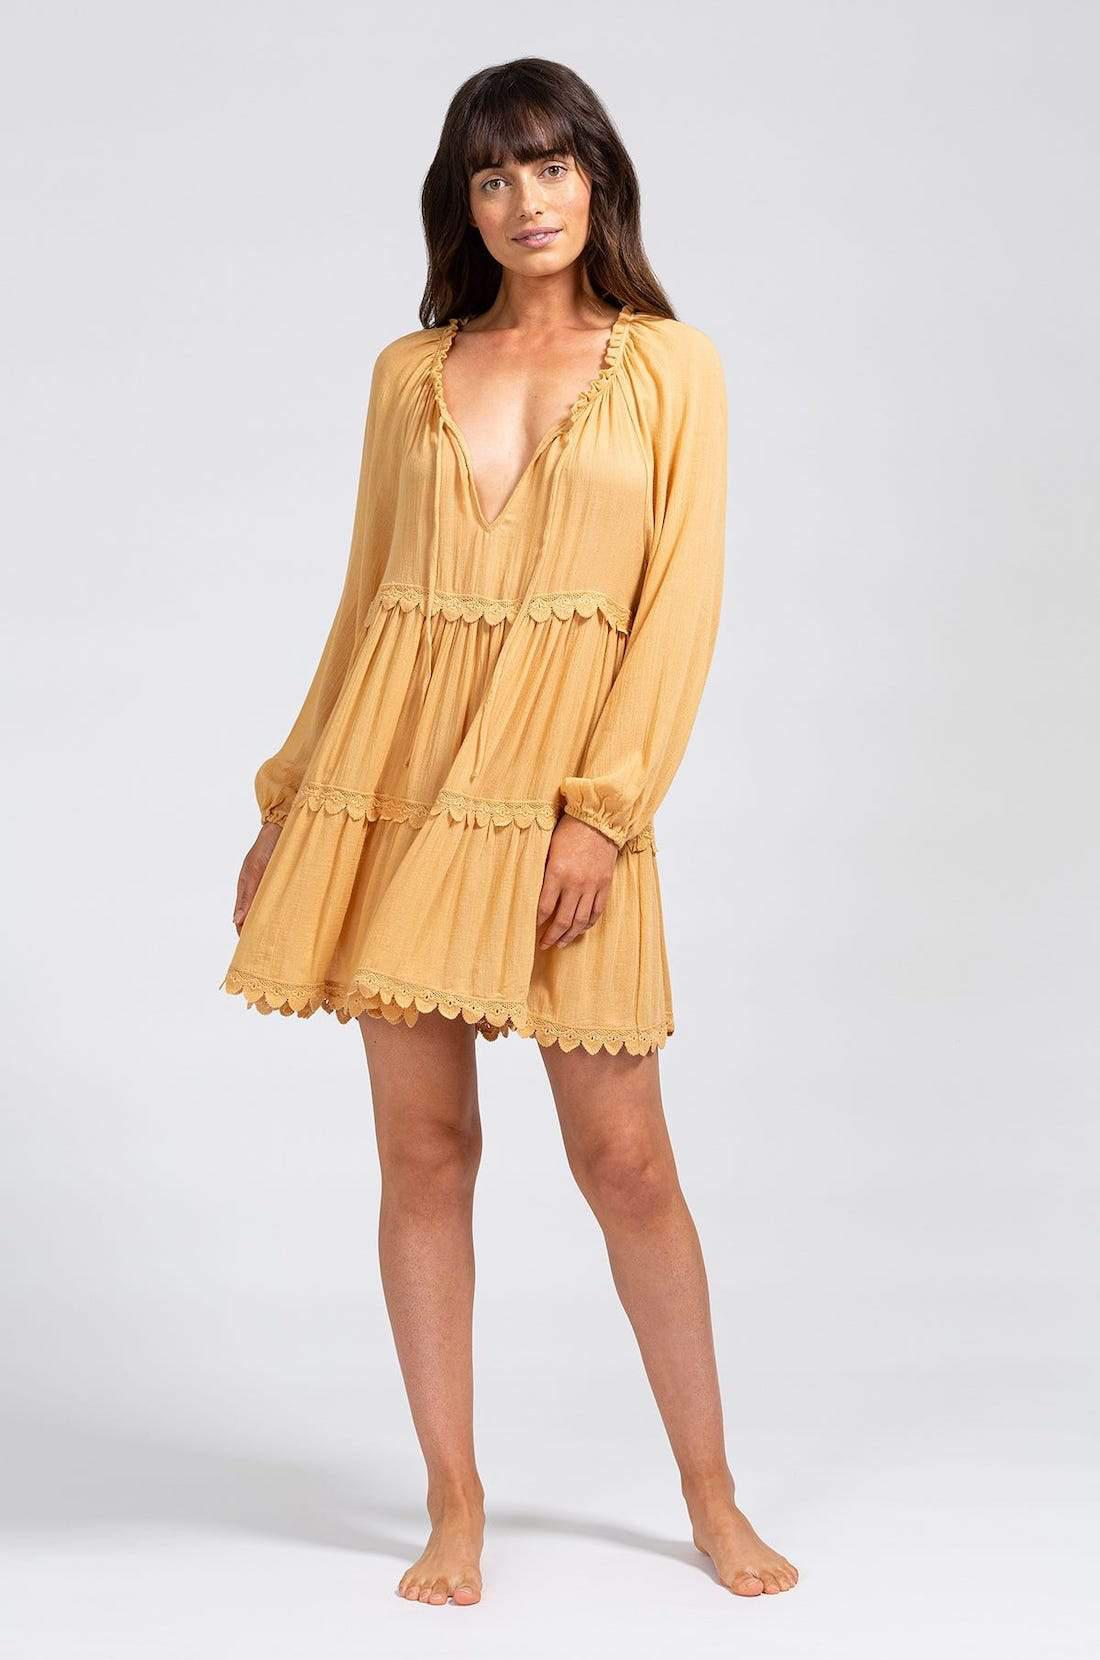 Sofia Breezy Weave Cover-Up - Straw